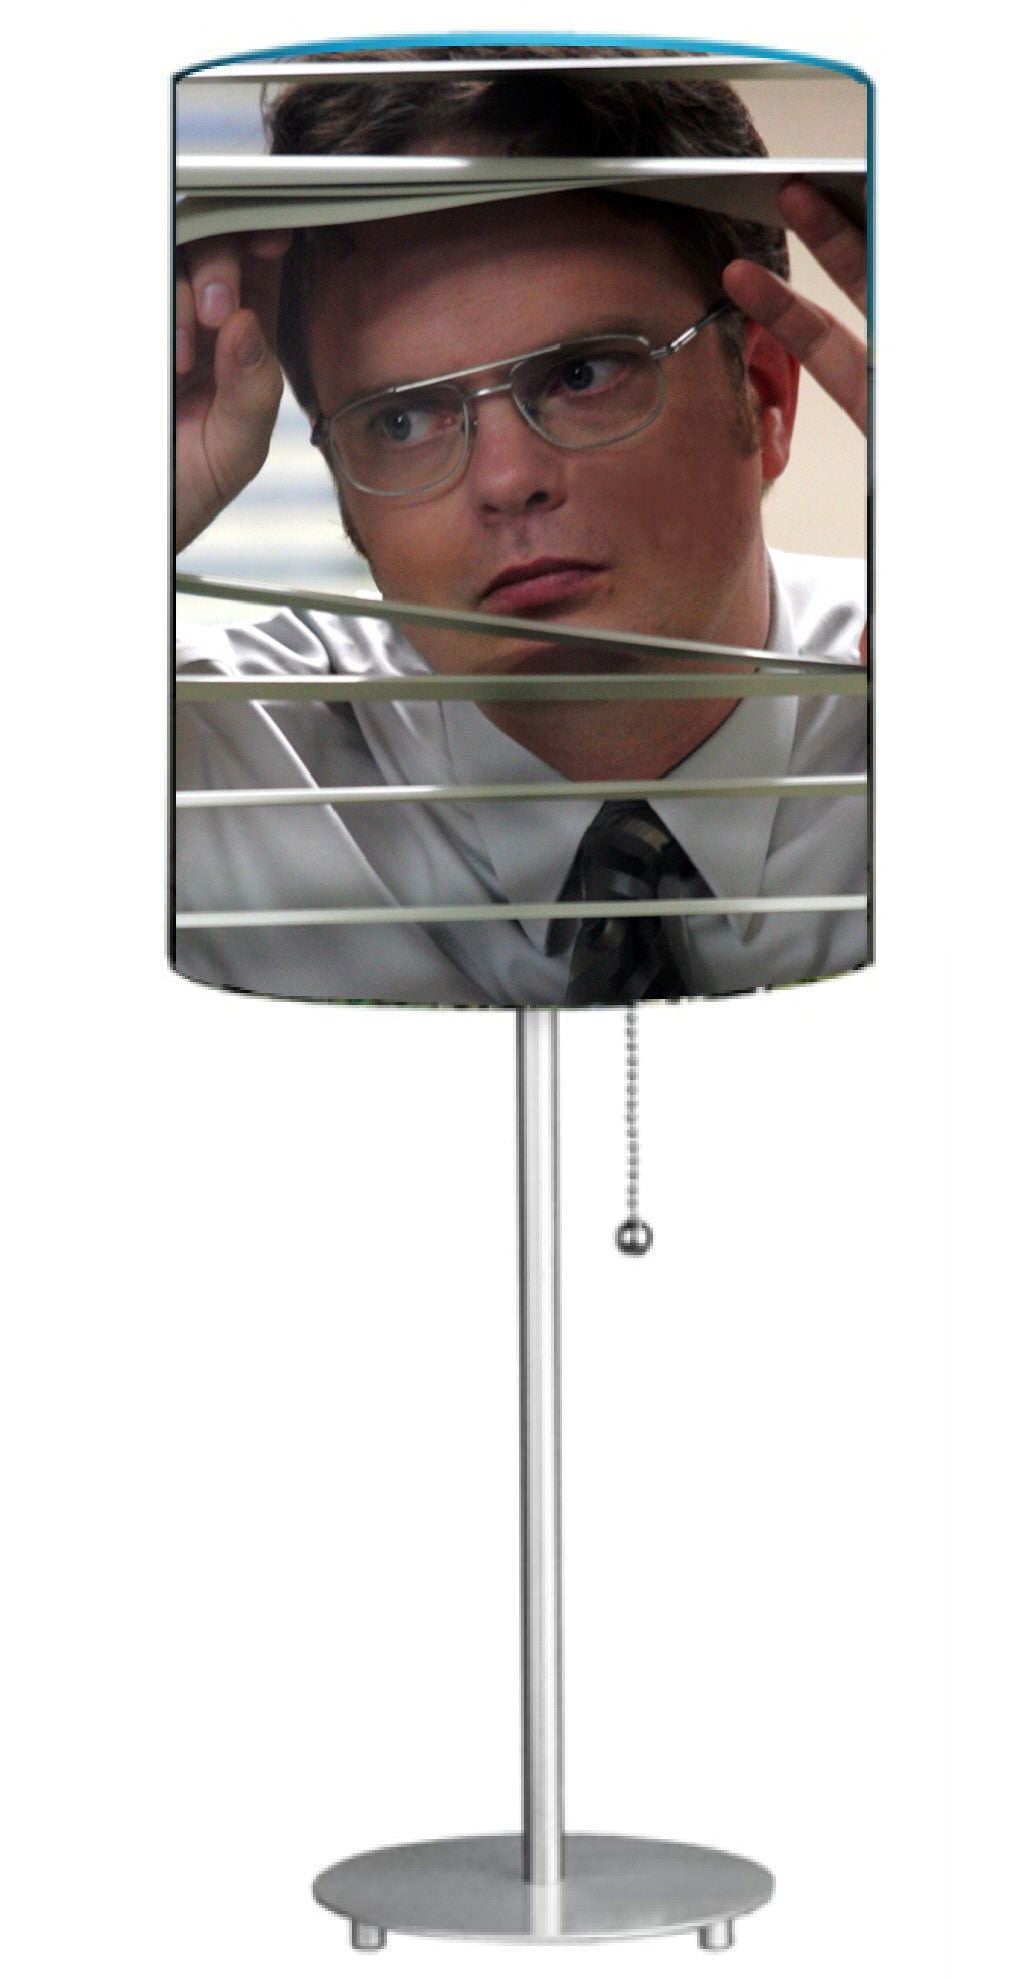 WOW Rare The Office Dwight Schrute Promo Lamp 19 inches tall ,  - Final Score Products, Final Score Products